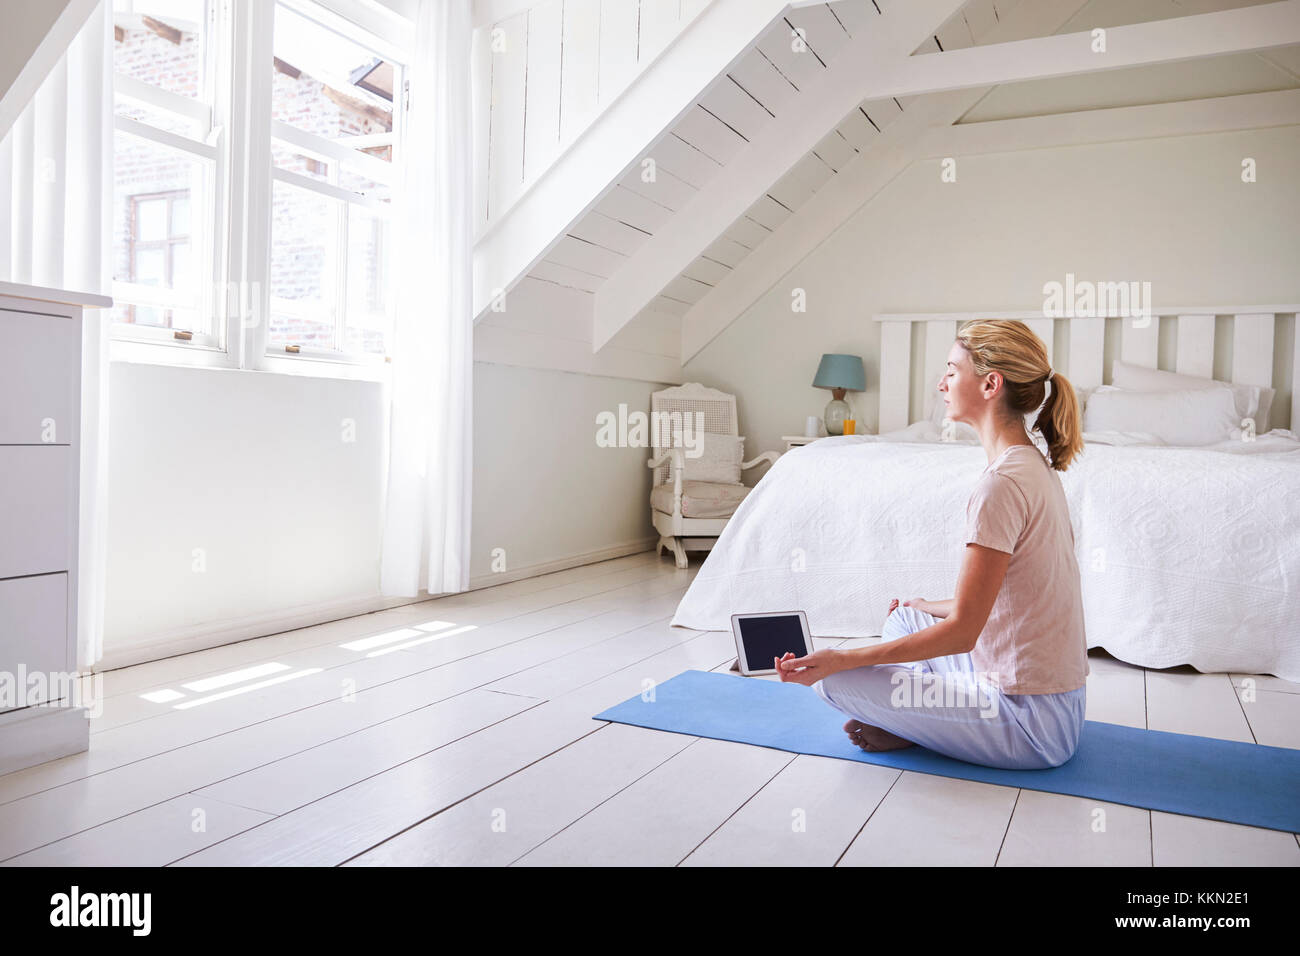 Woman With Digital Tablet Using Meditation App In Bedroom - Stock Image